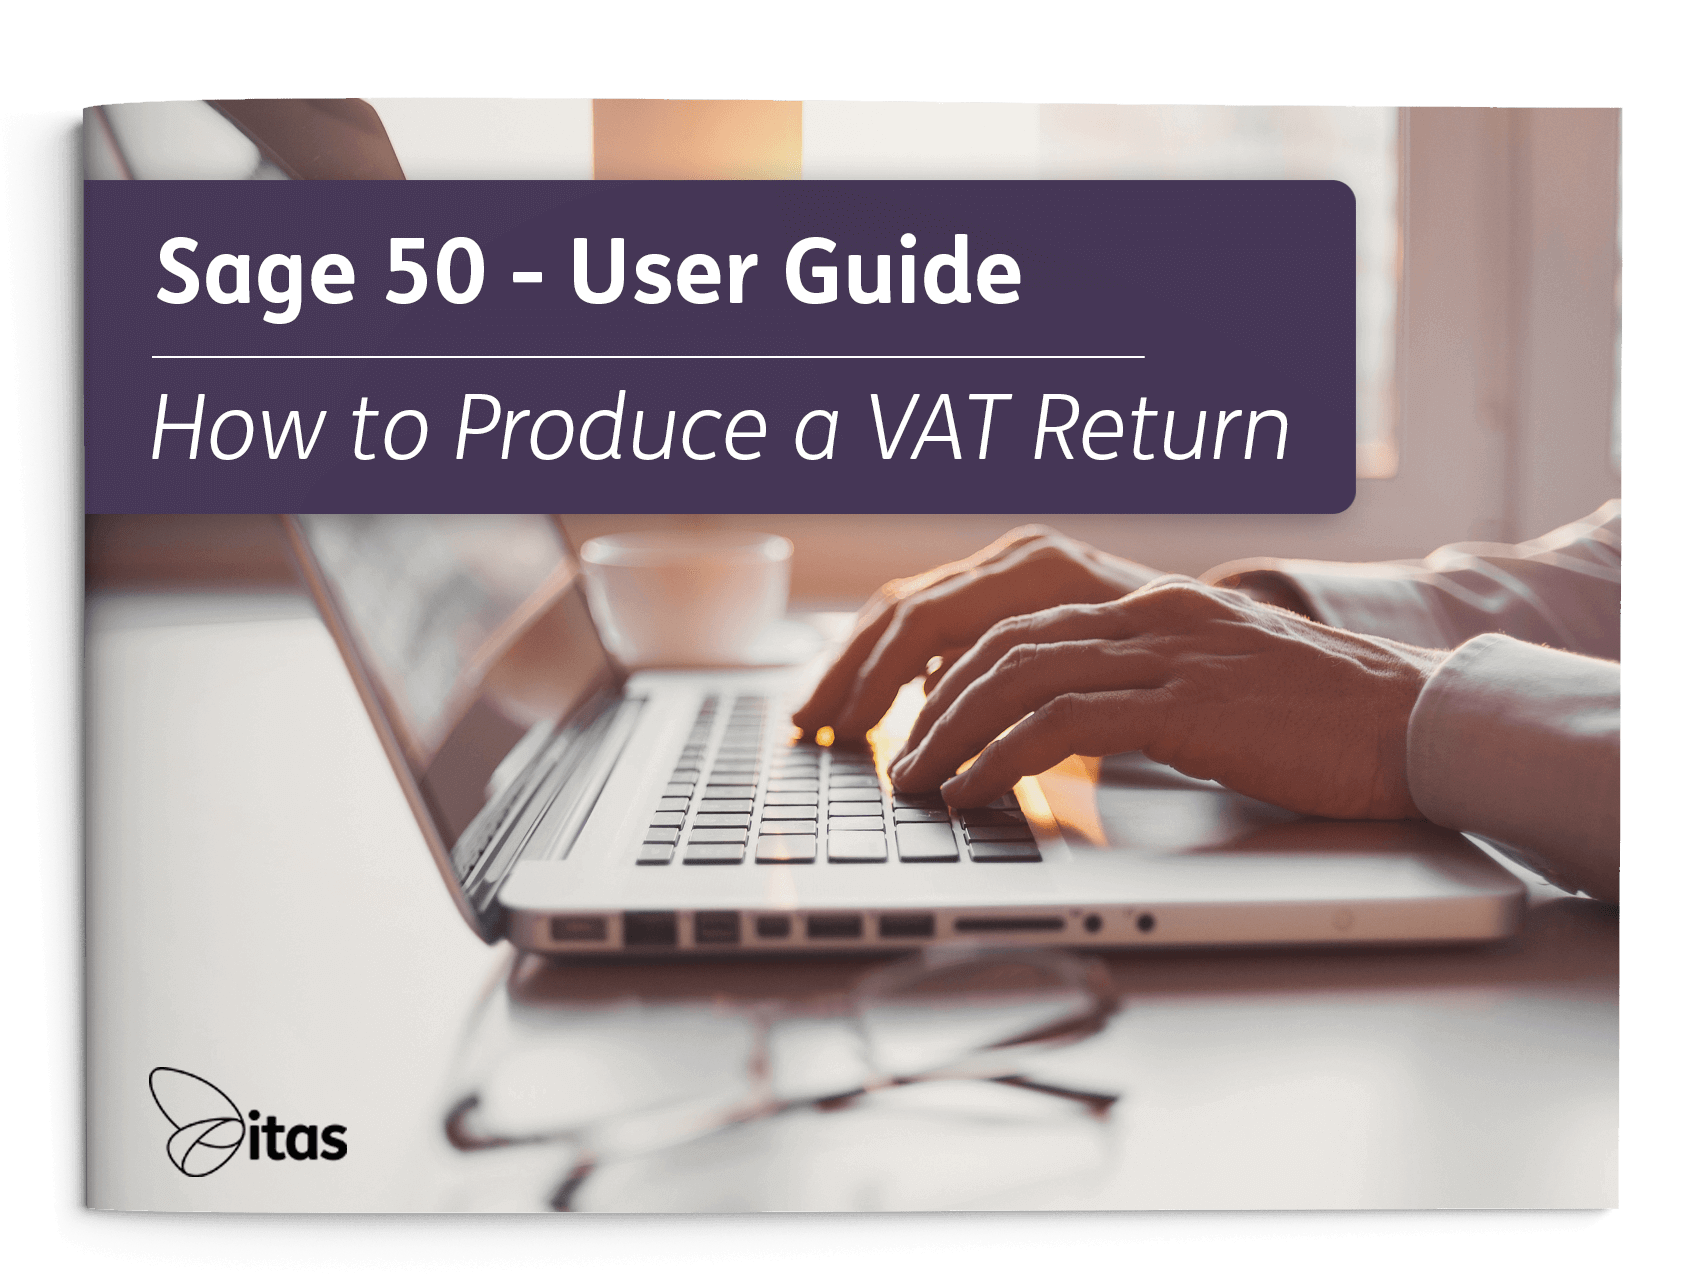 How to produce a VAT return in Sage 50 help guide